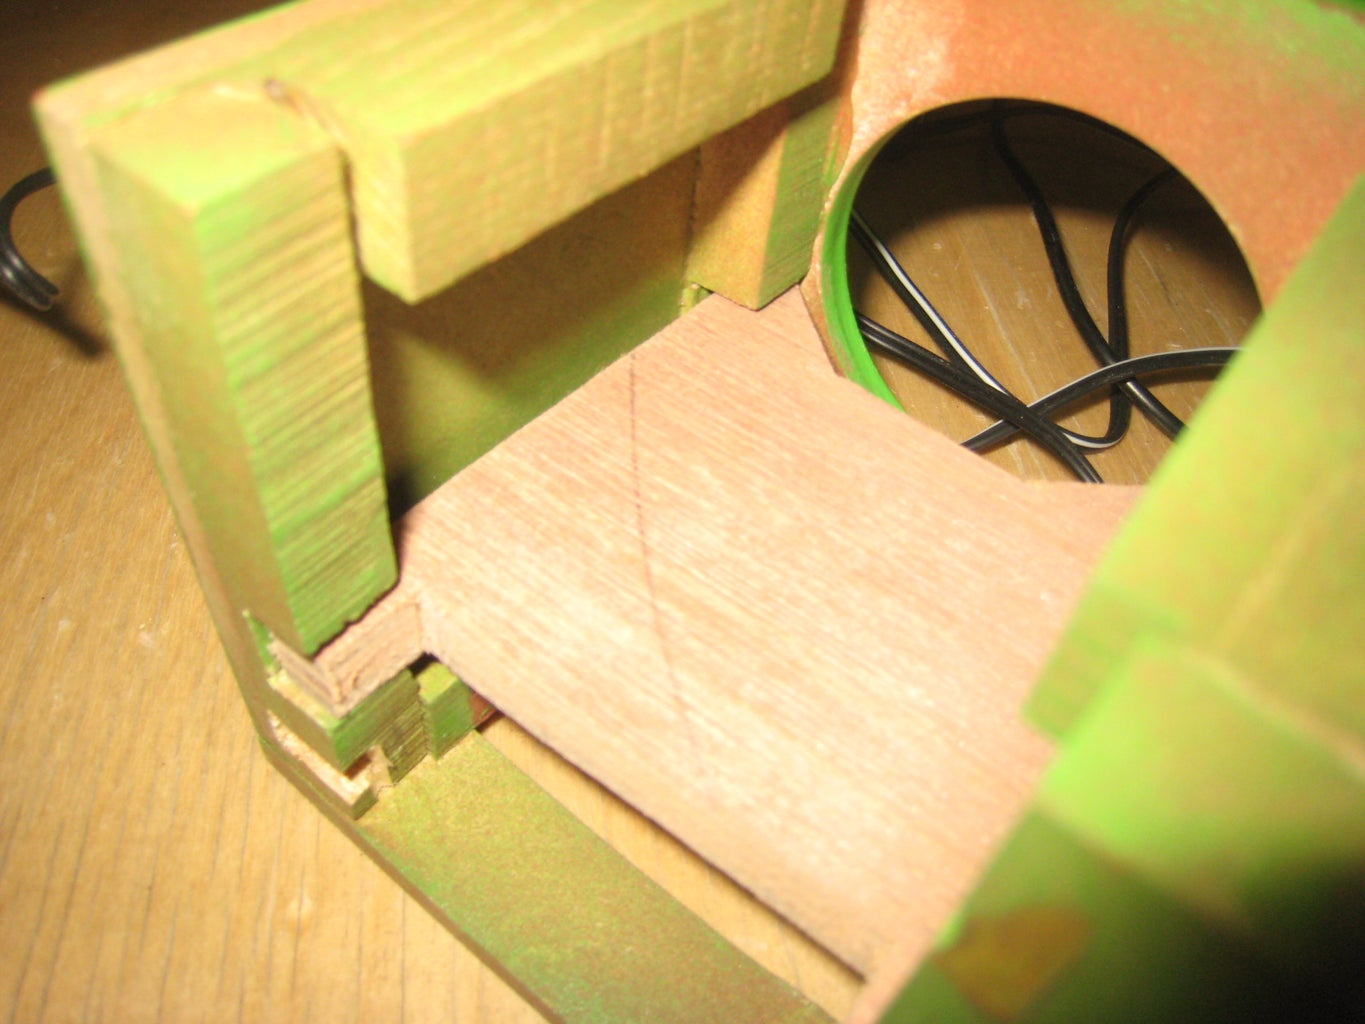 More Gluing